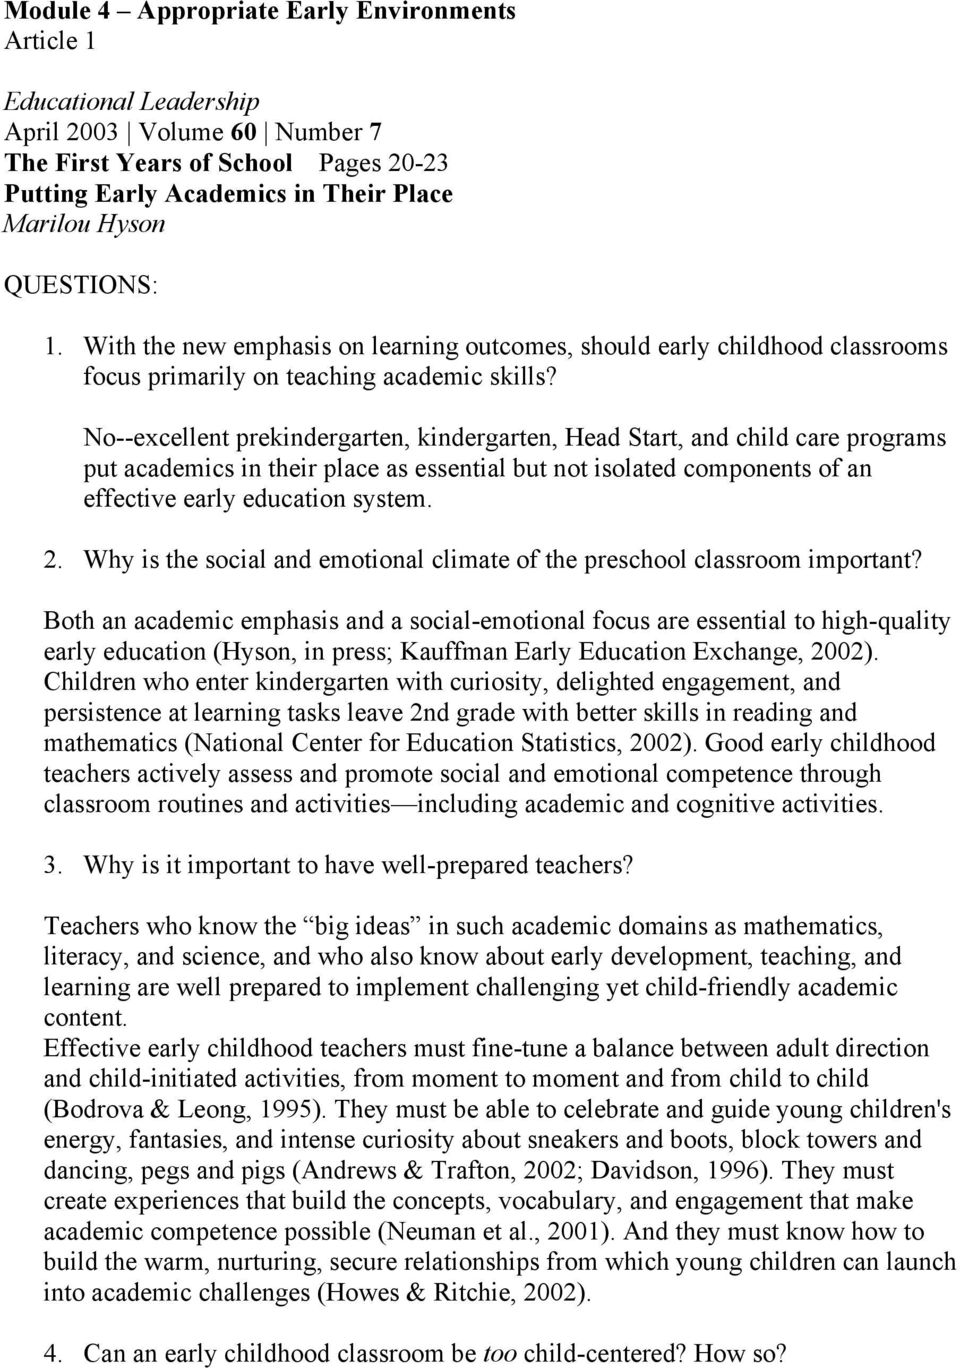 No--excellent prekindergarten, kindergarten, Head Start, and child care programs put academics in their place as essential but not isolated components of an effective early education system. 2.